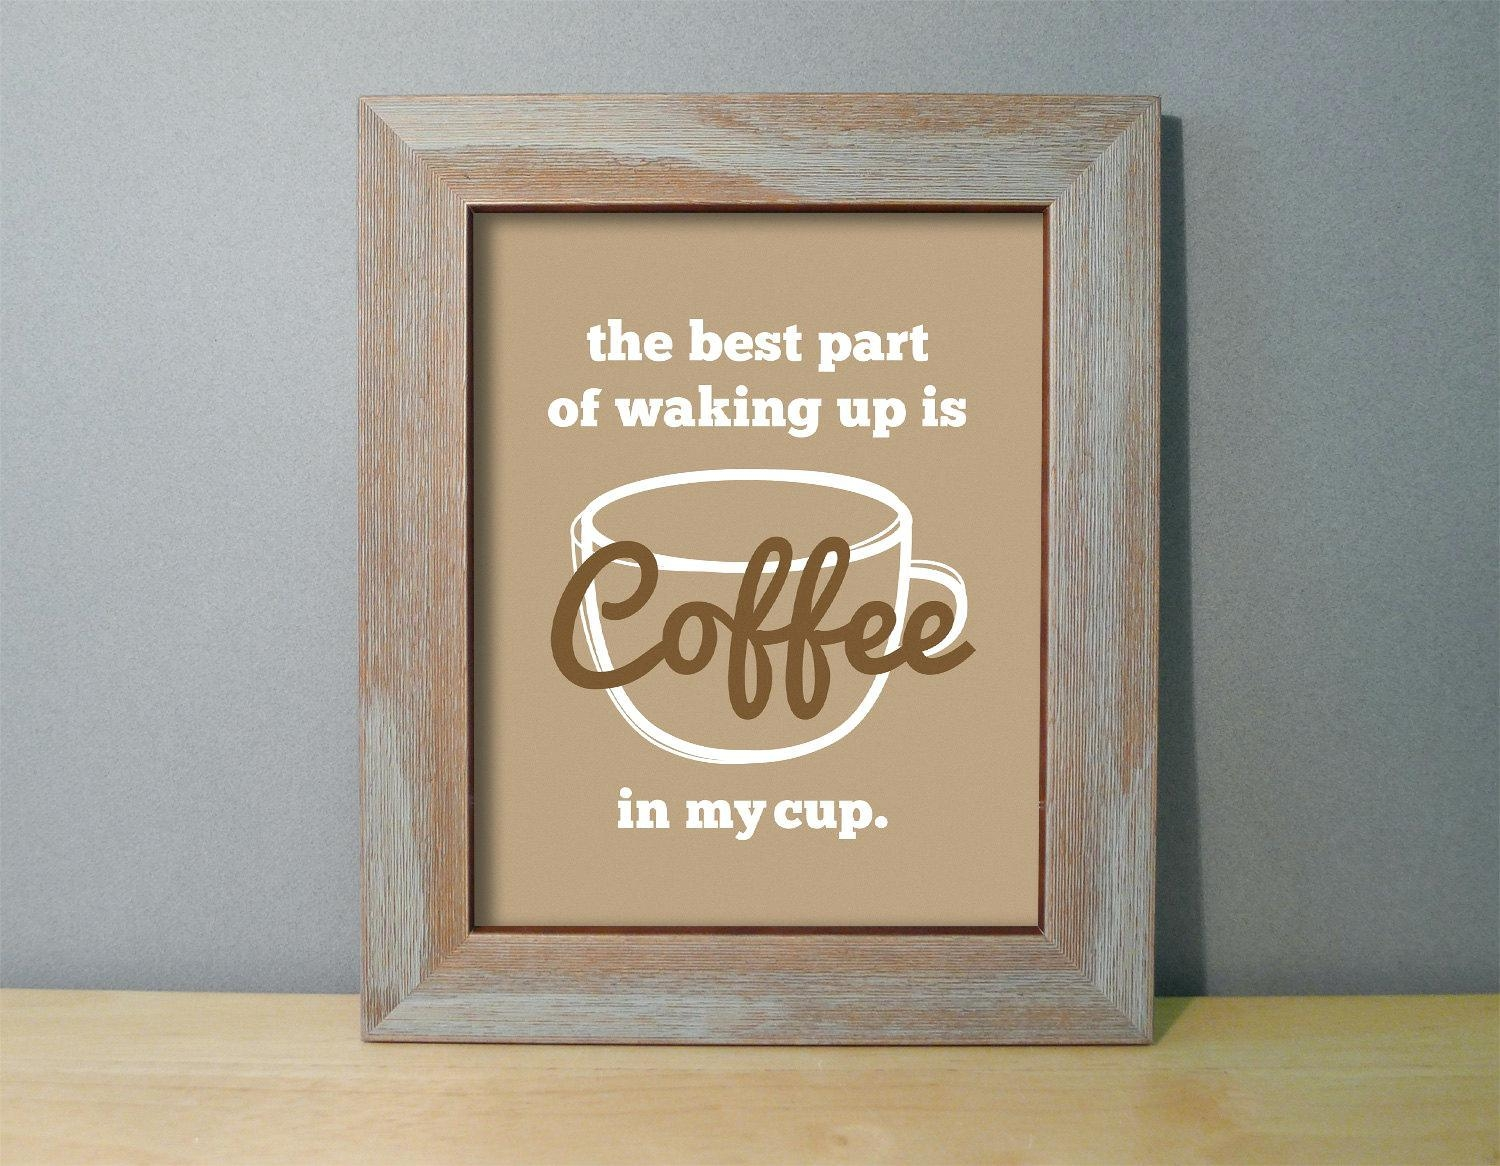 Wall Ideas : Coffee Cup Metal Wall Art 3D Metal Coffee Cup Wall In Metal Wall Art Coffee Theme (Photo 4 of 20)